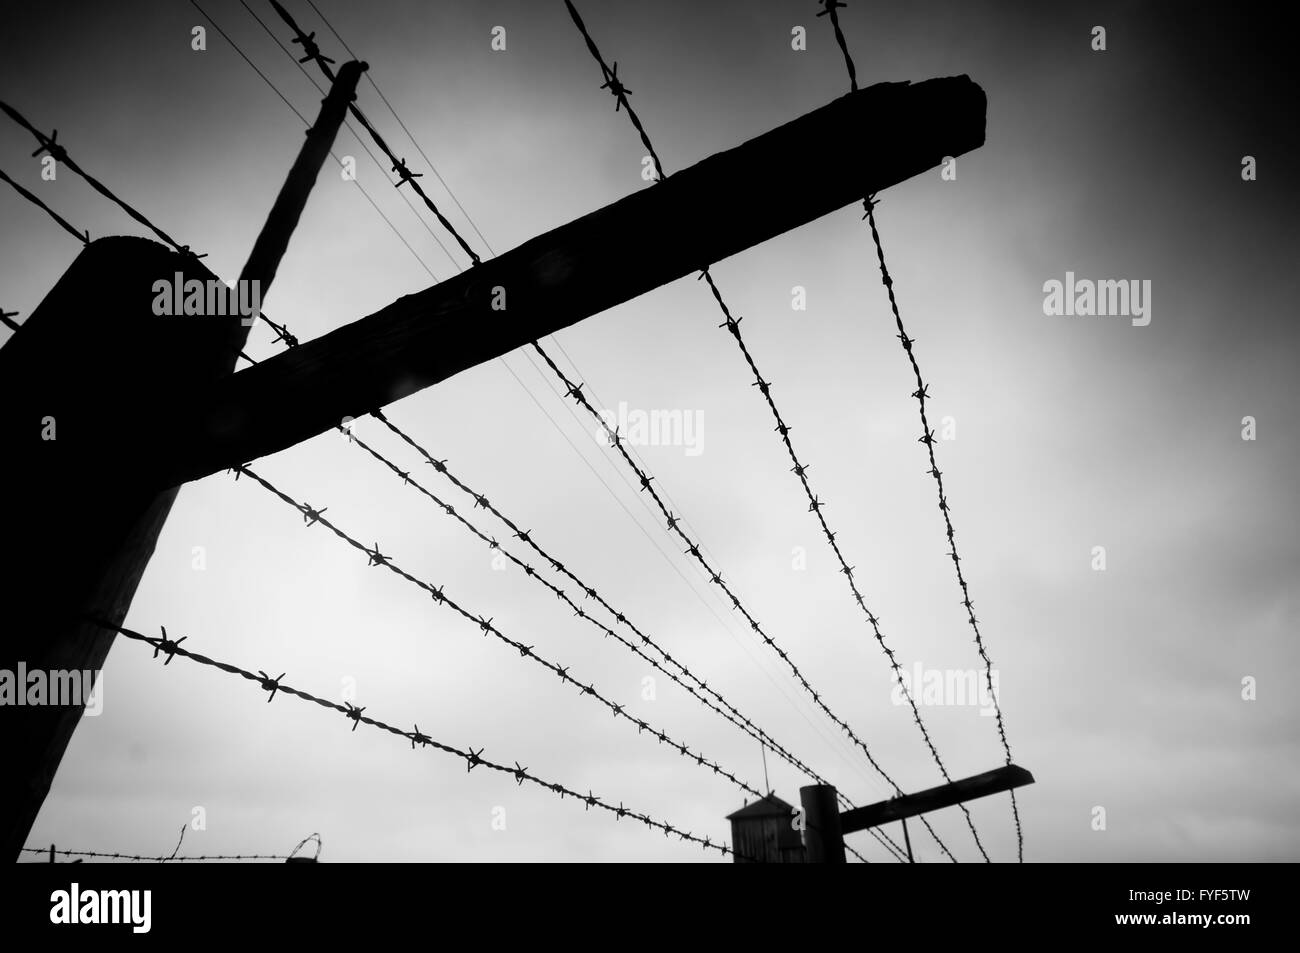 Prison. Barbed wire fence. Black and white - Stock Image